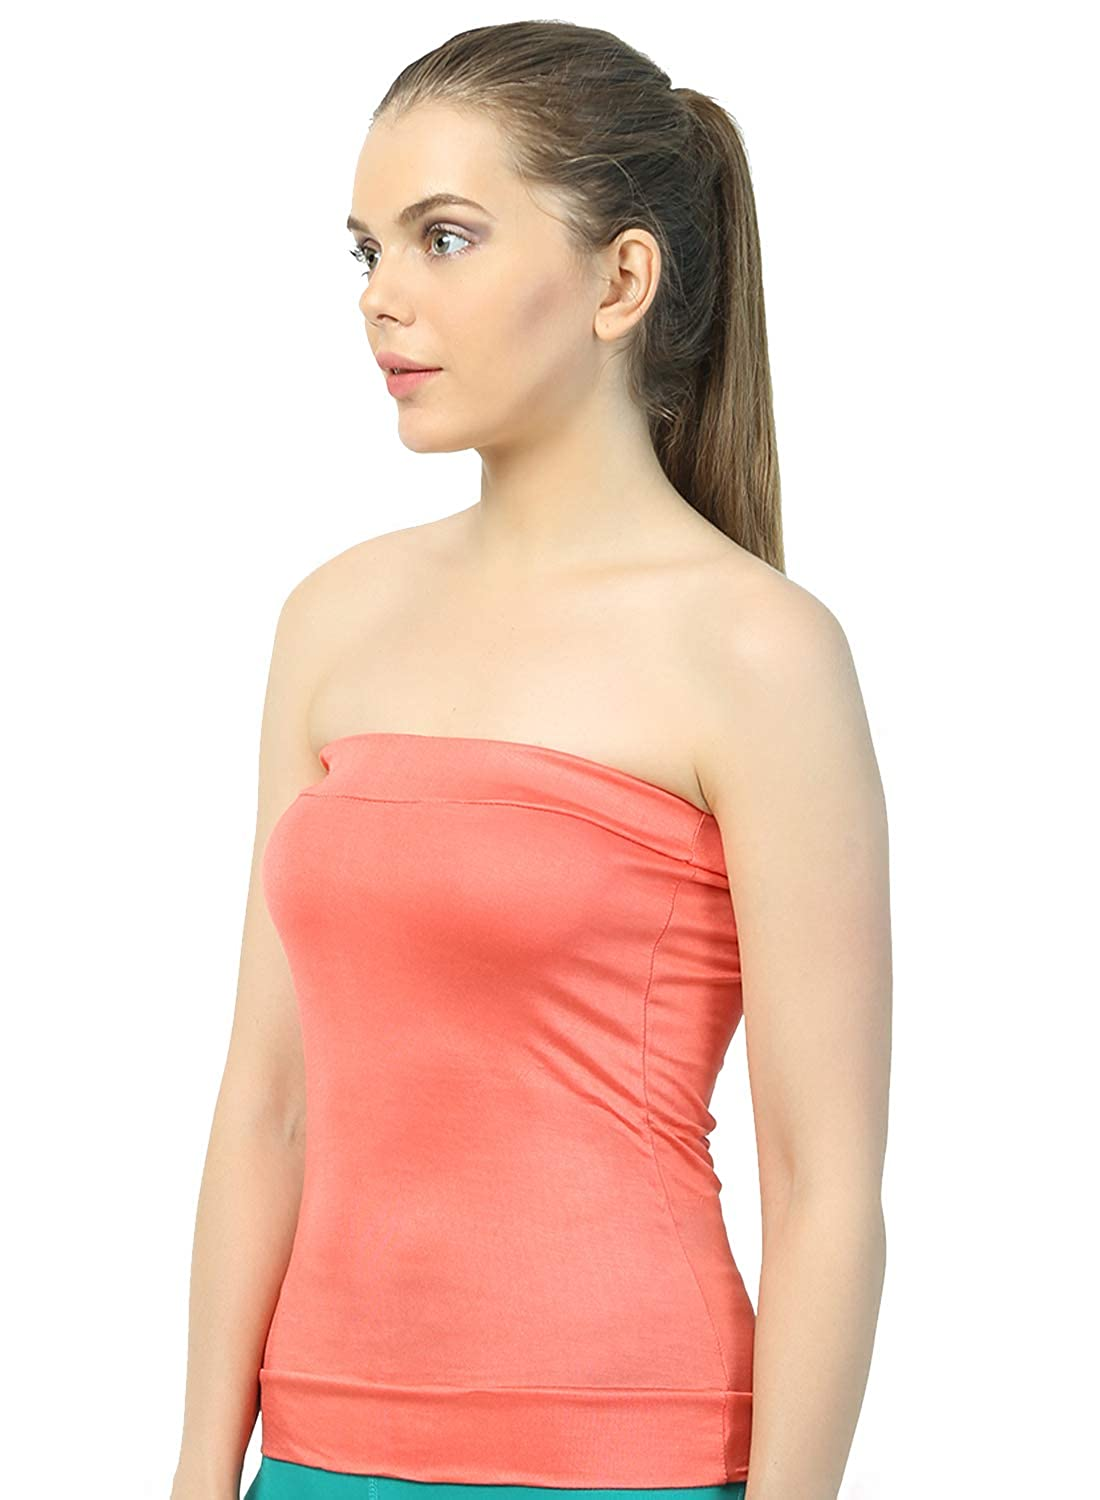 cd077178ce Famila Bralette Bra Sexy Tube Top Camisole for Women Girl Ladies Female  Solid Colour Non-Padded Seamless 4-Way Lycra Tube Top Inner (Famila678 Peach Free  ...